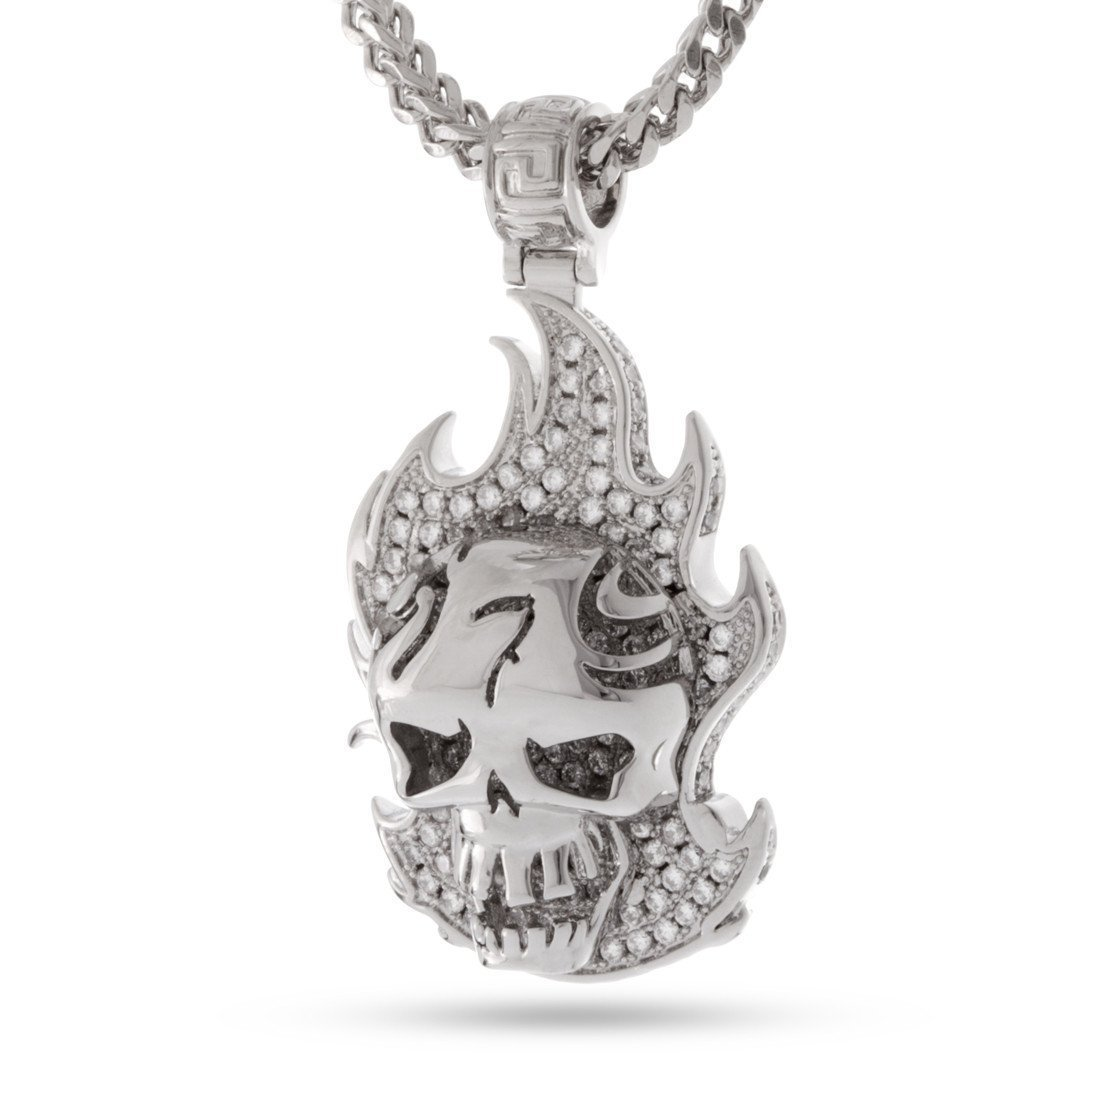 El Diablo Necklace